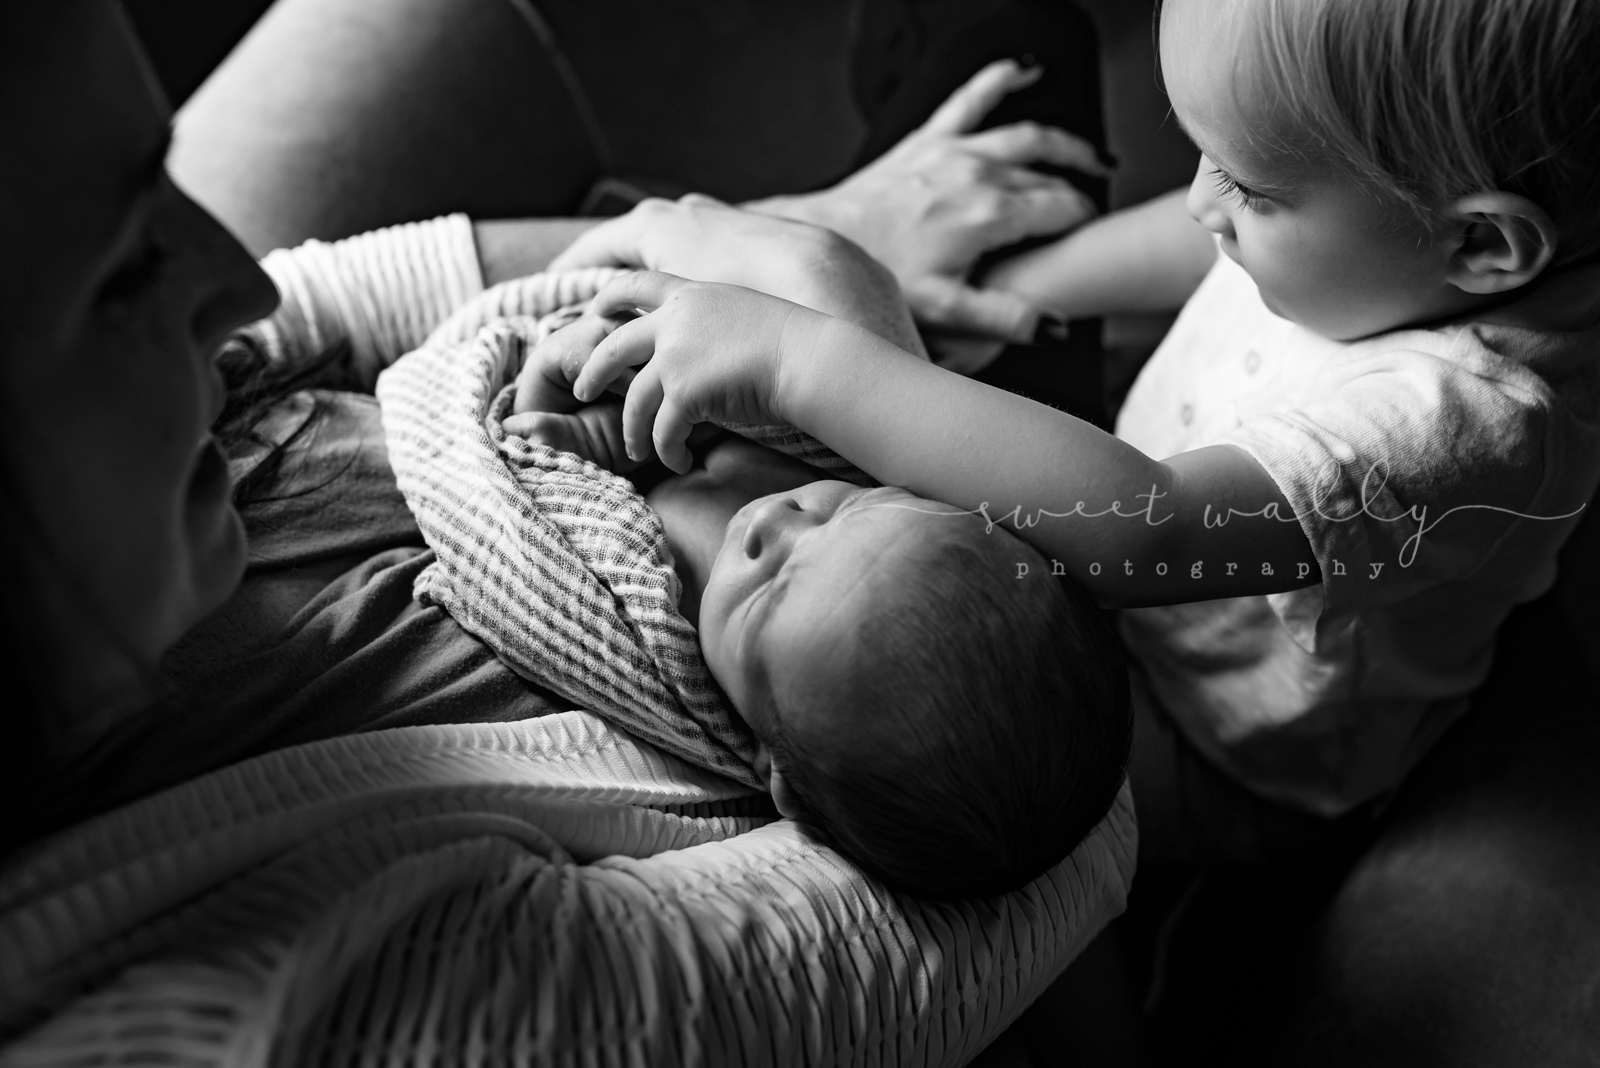 Big brother checking out the new kid in town | Relaxed family newborn photos by Sweet Wally Photography in Nashville, Tenneessee